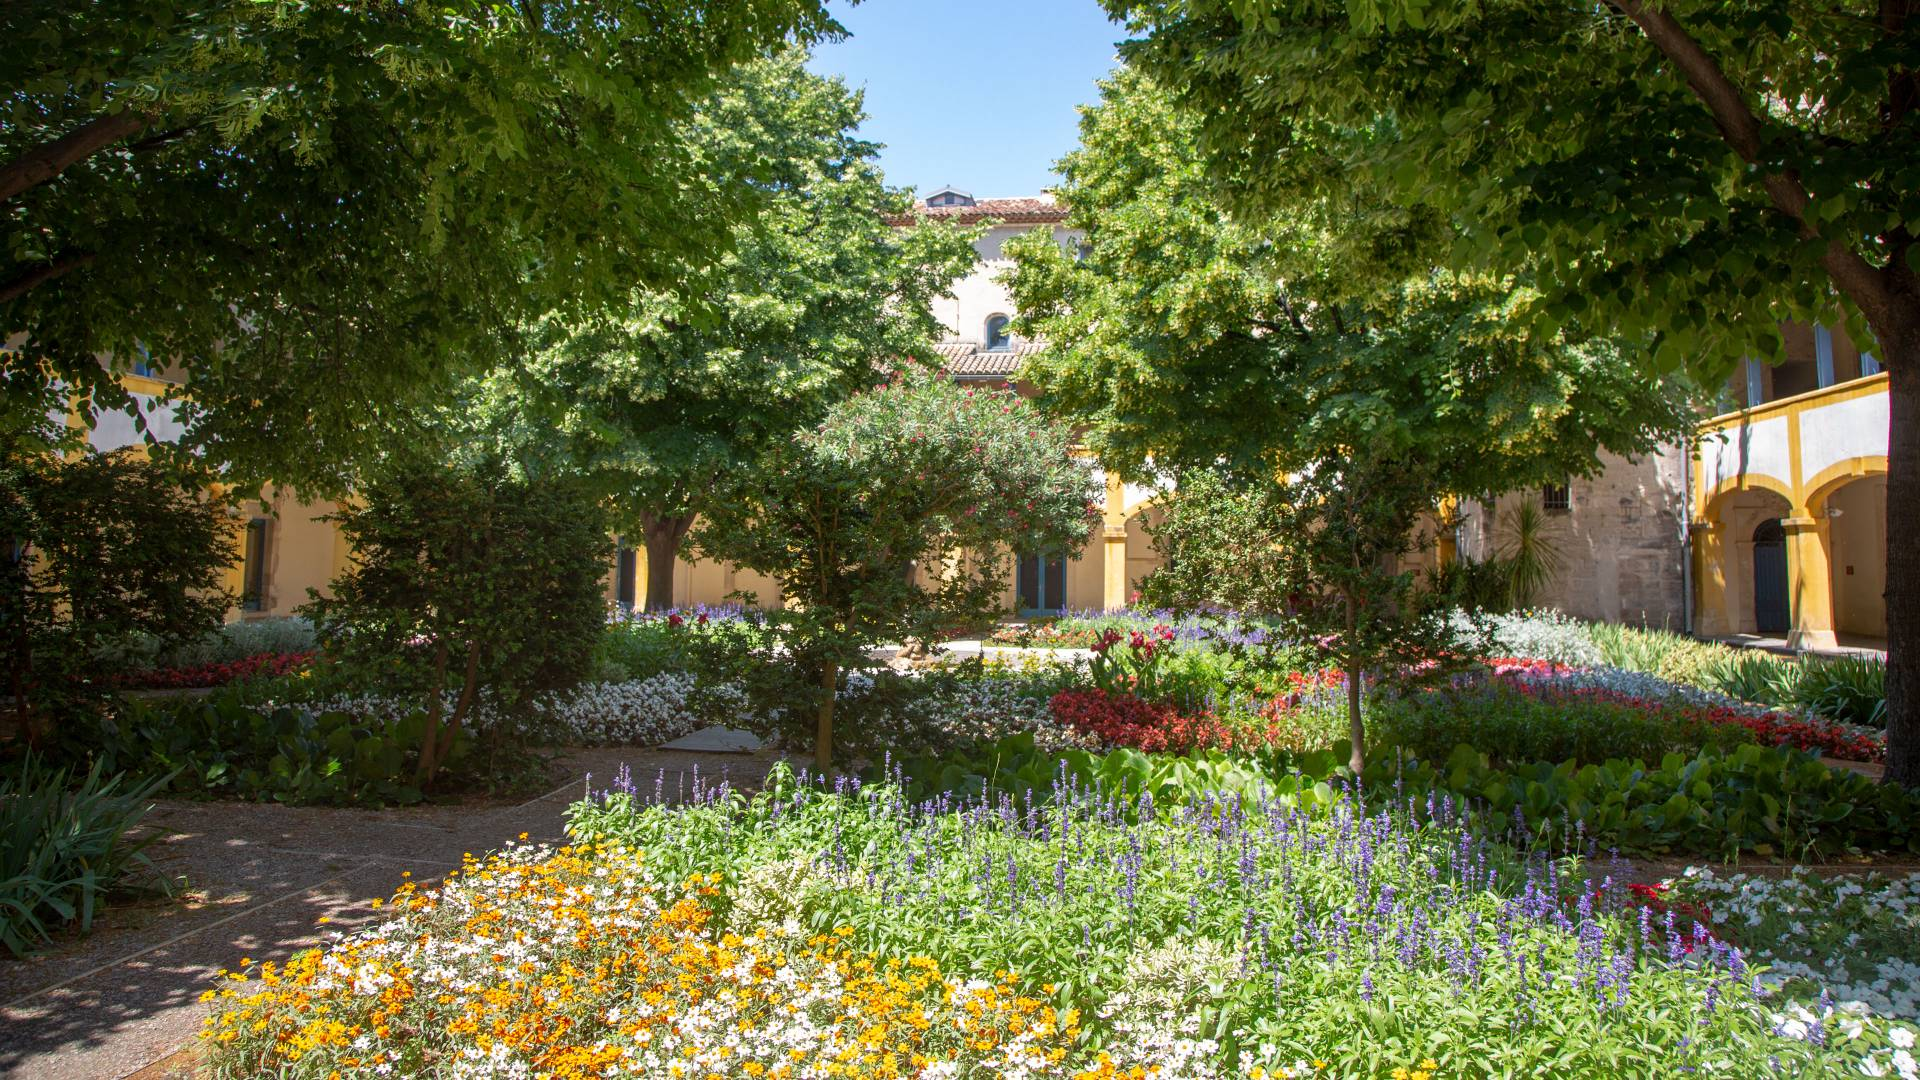 House and gardens in Arles, France